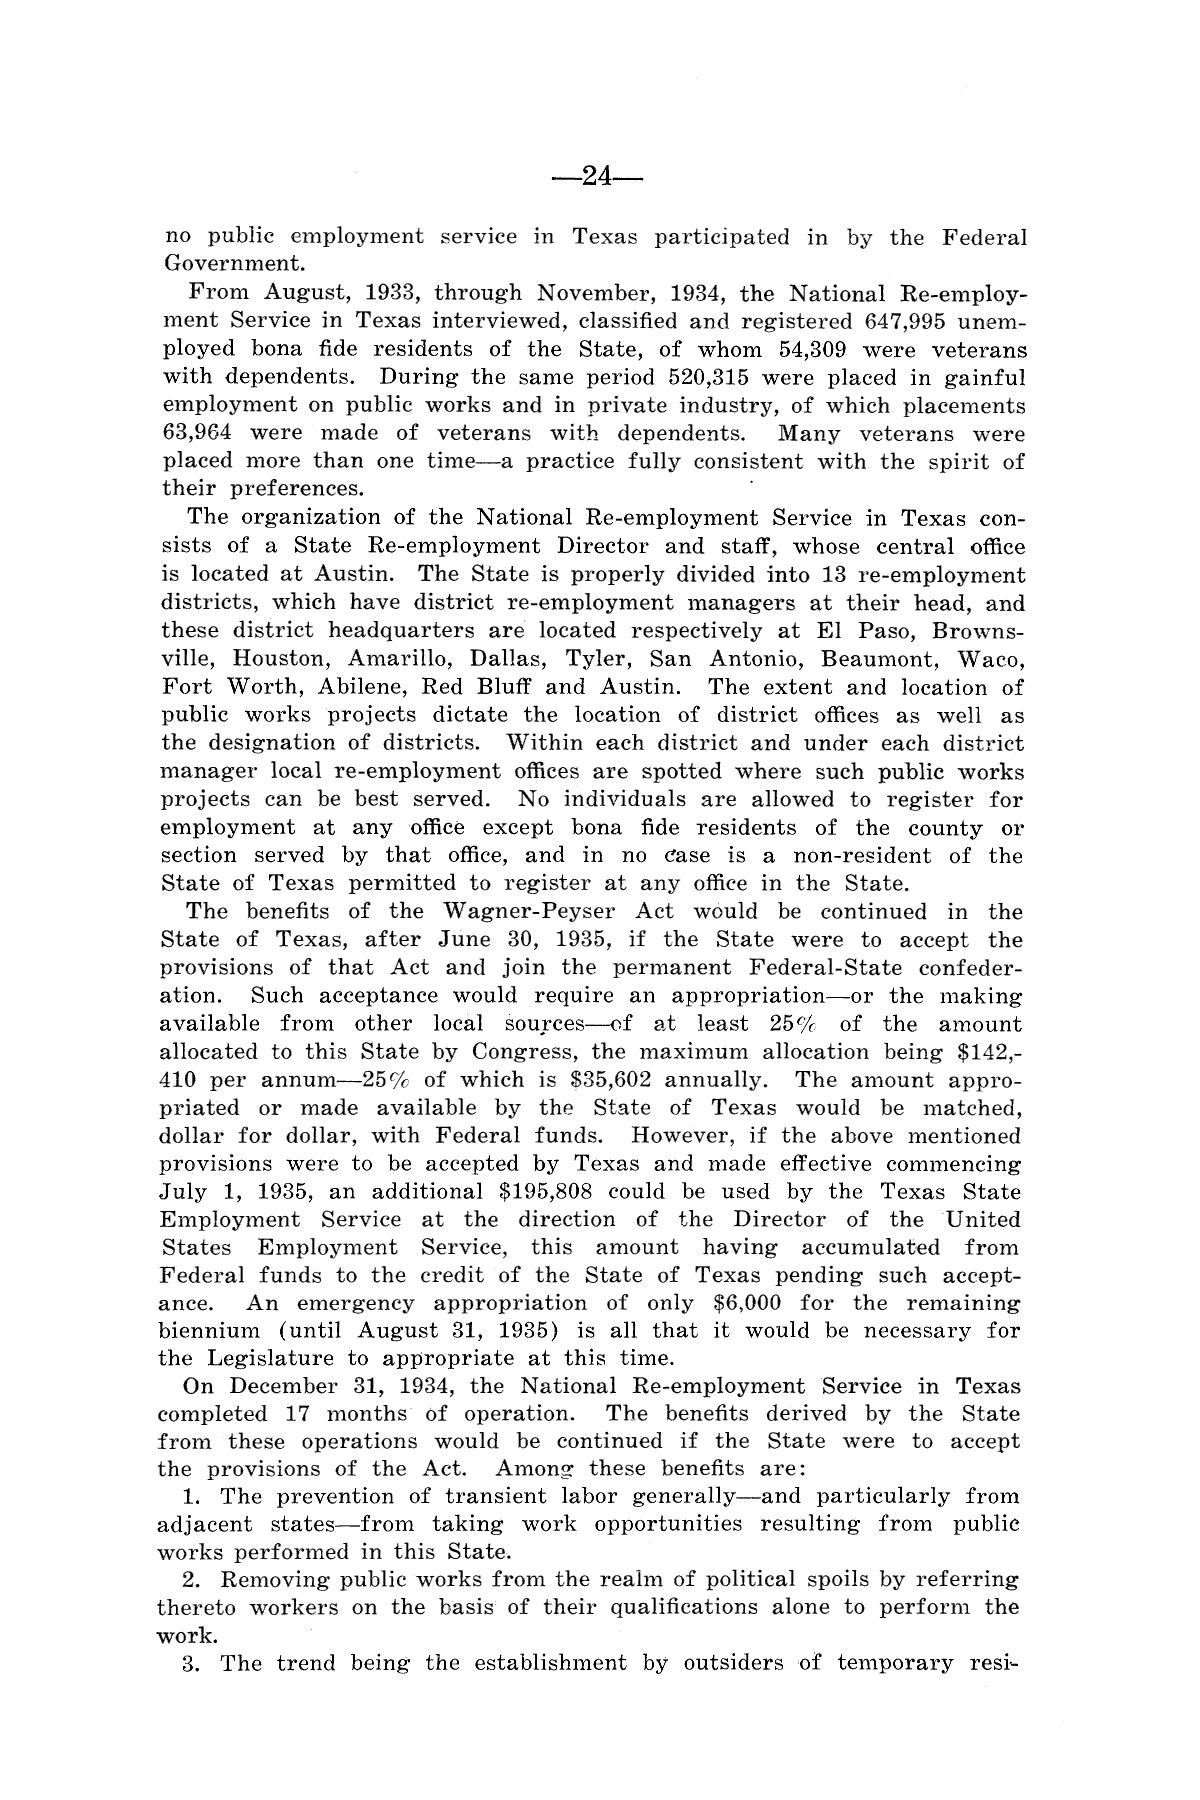 Legislative Messages of Hon. James V. Allred, Governor of Texas 1935-1939                                                                                                      [Sequence #]: 23 of 263